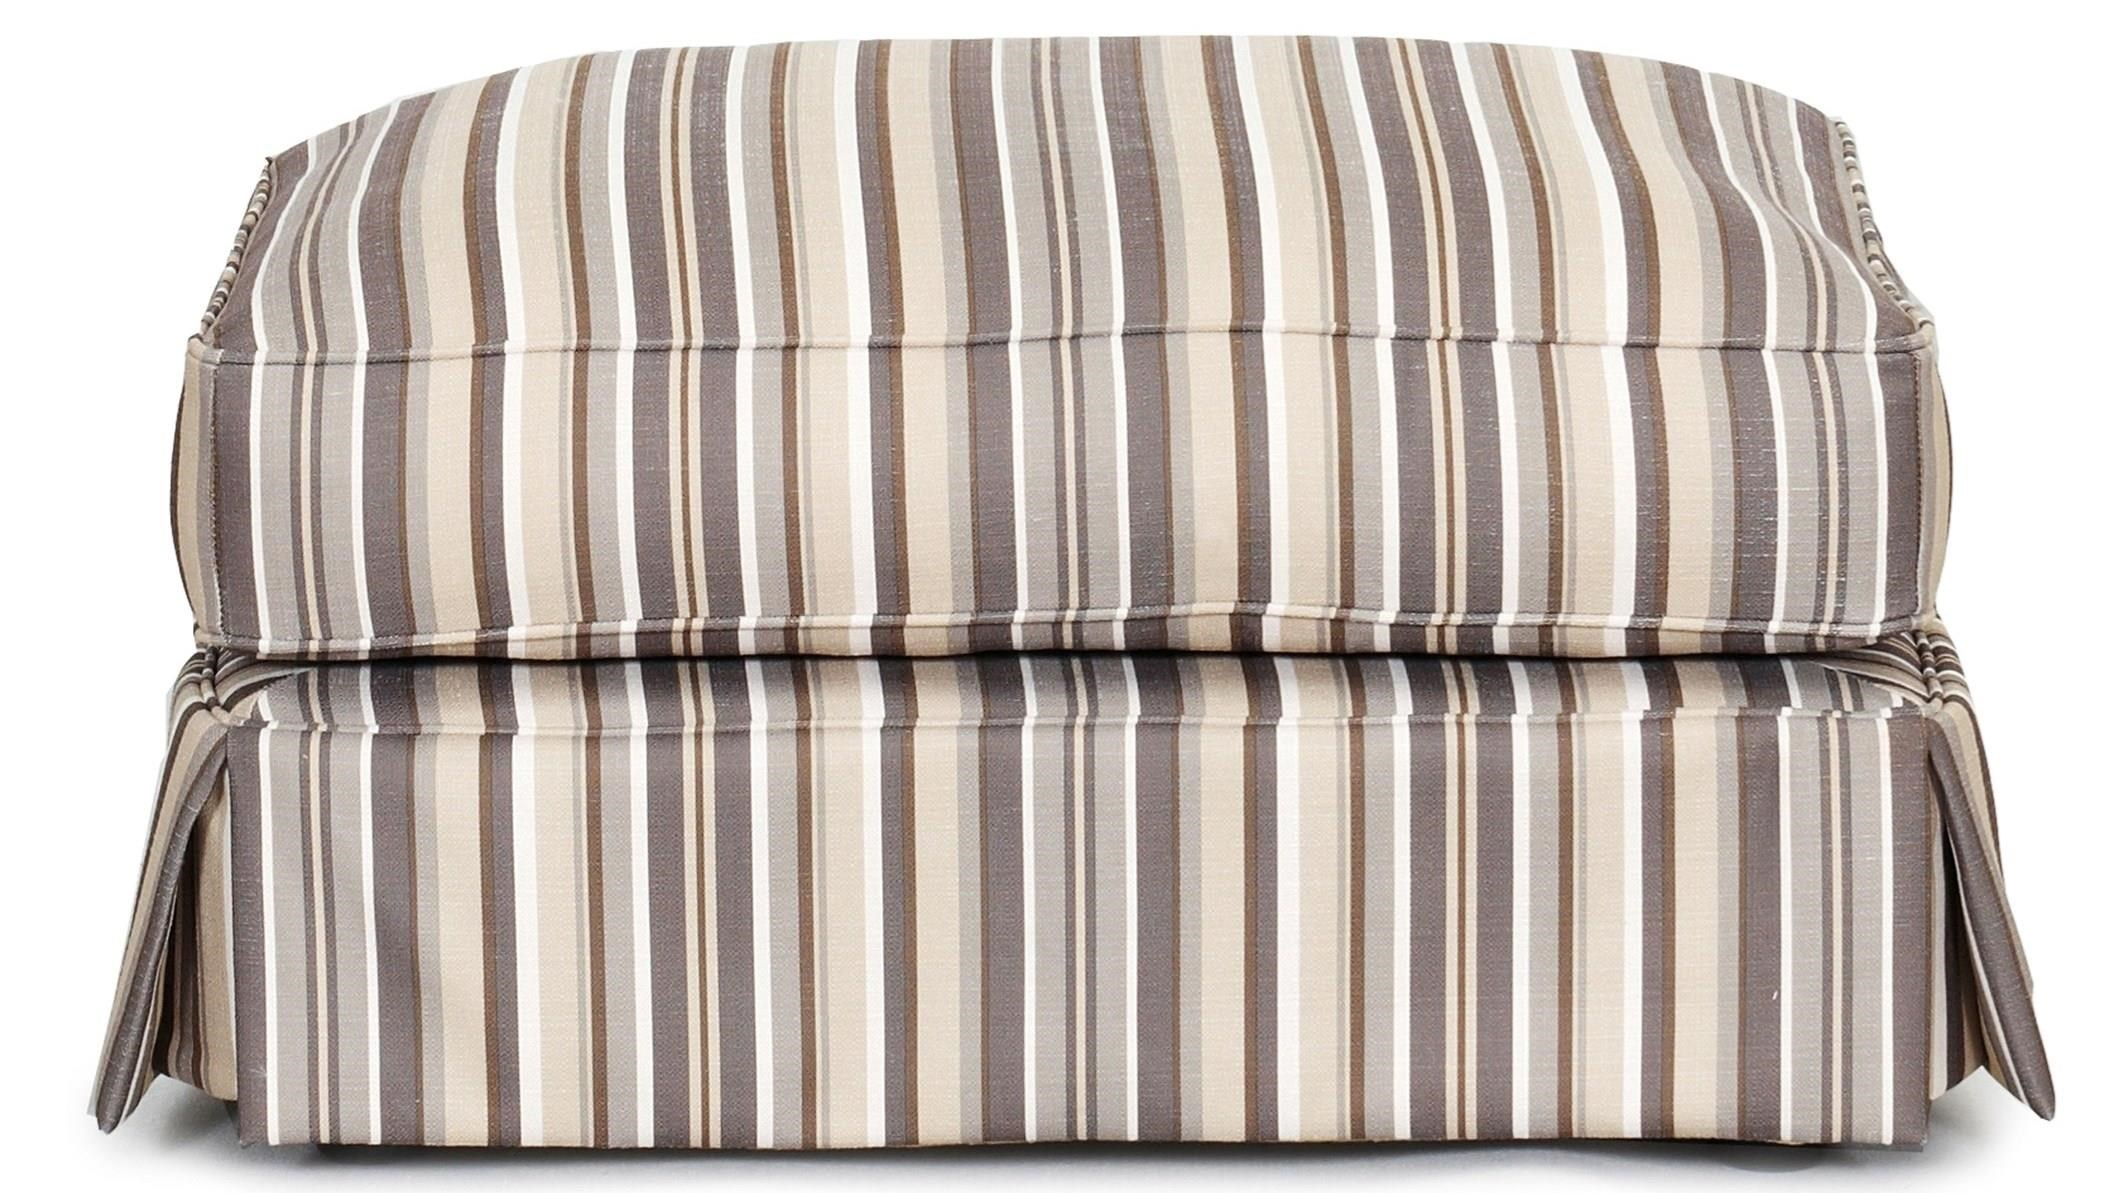 Synergy Home Furnishings 669 Casual Ottoman - Item Number: 669-30